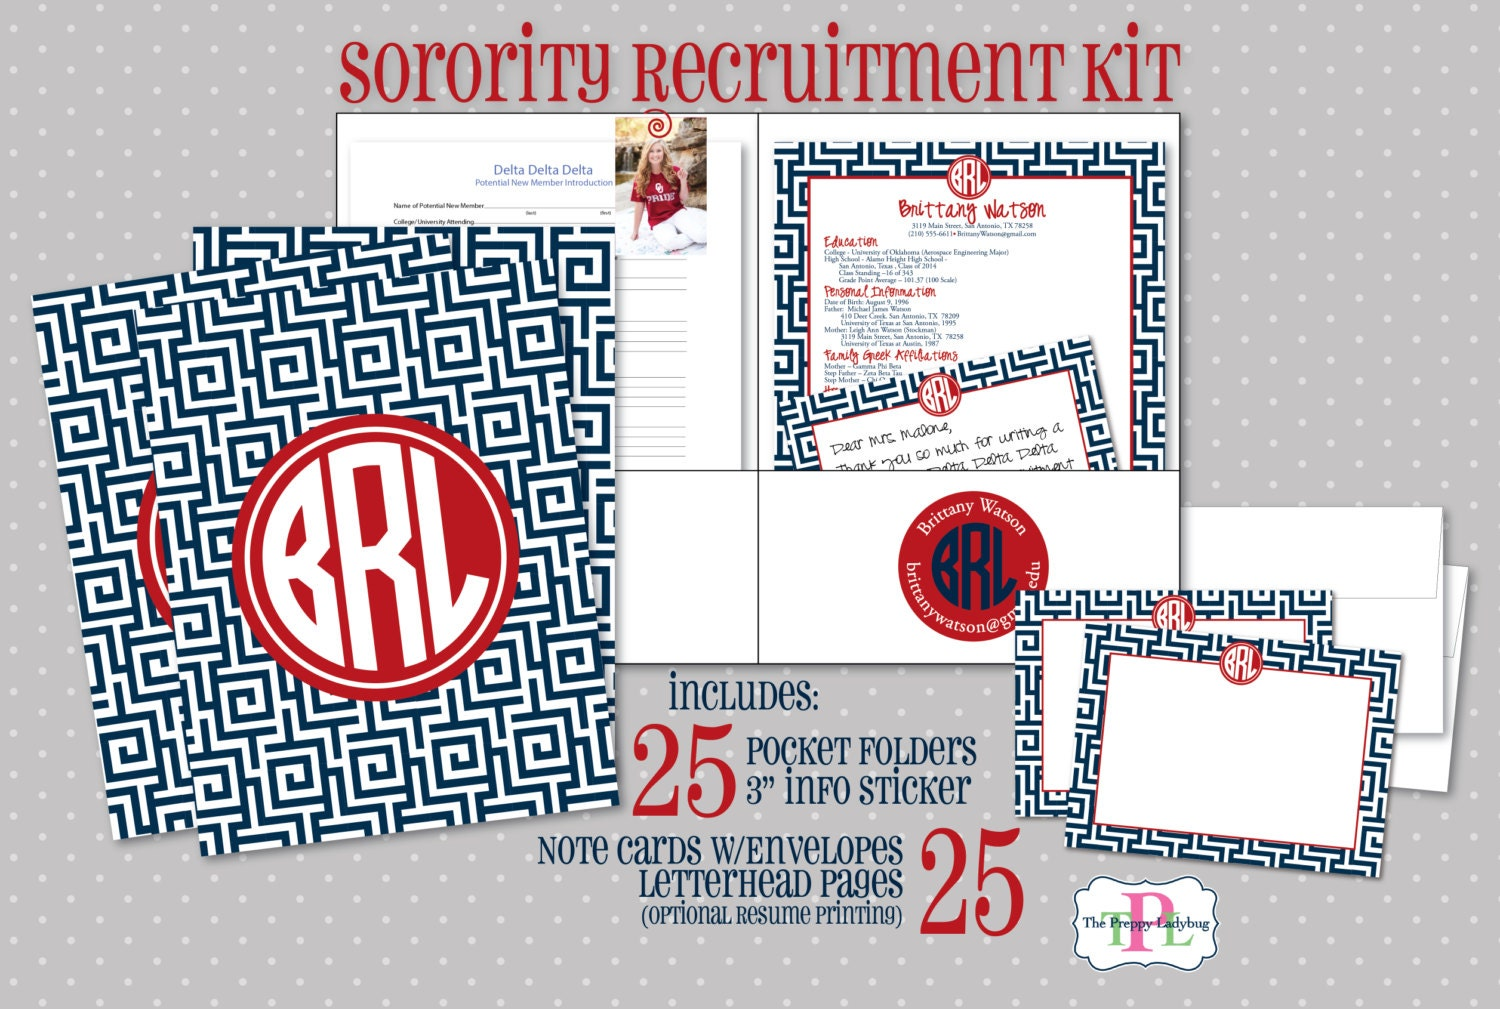 sorority recruitment recommendation kit set of 25 the